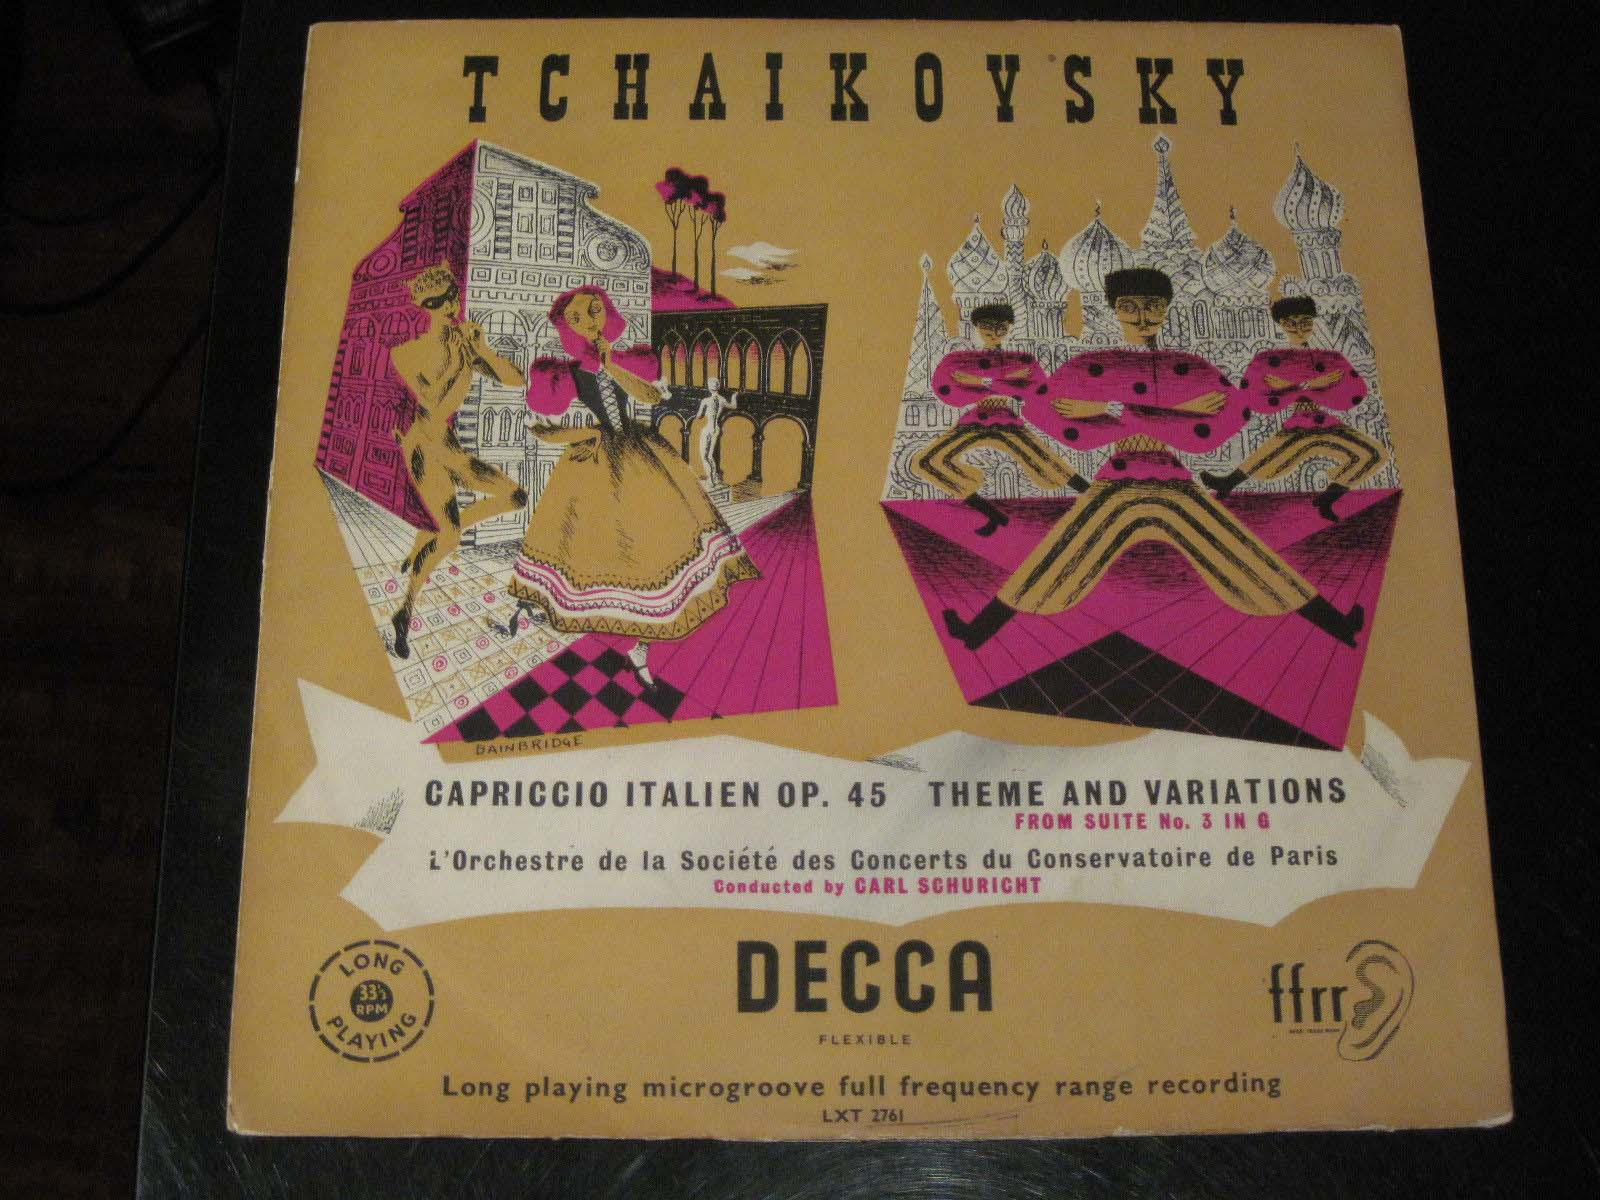 Tchaikovsky - Capriccio Italien Op.45 Theme and Variations